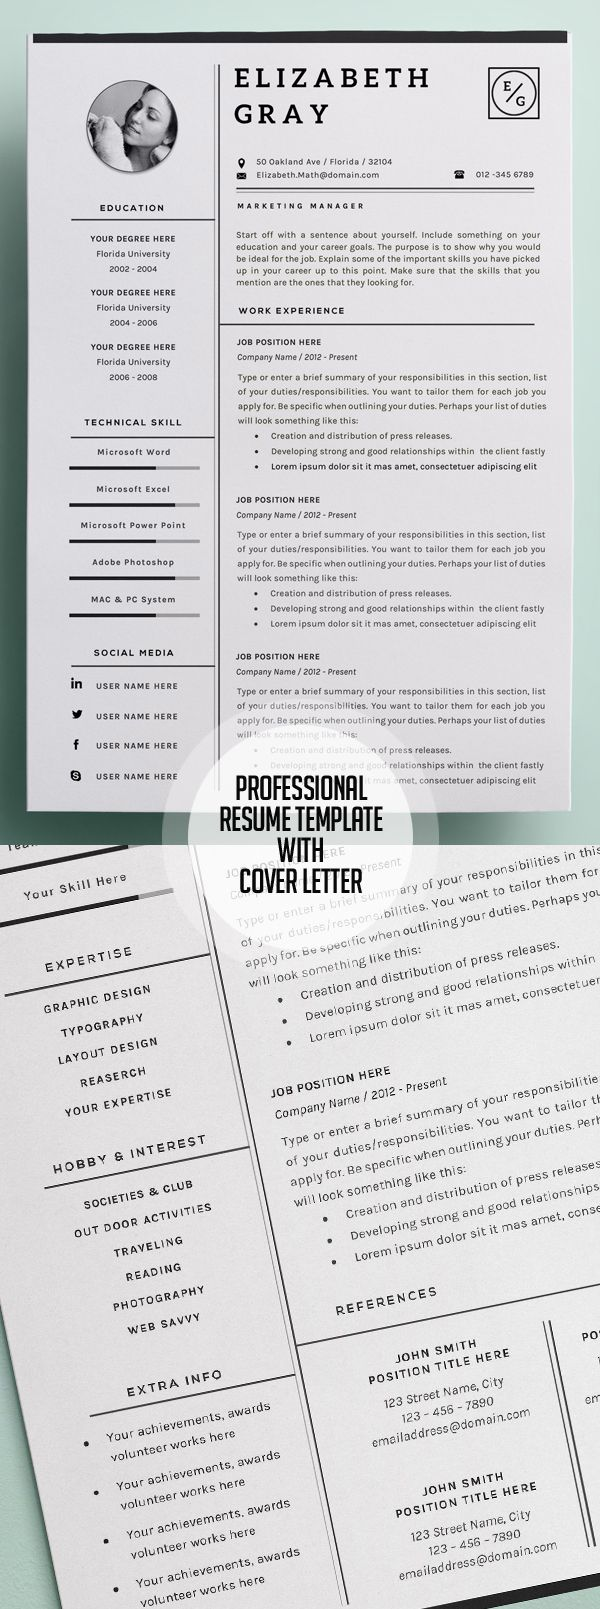 Opposenewapstandardsus  Nice  Resume Ideas On Pinterest  Resume Resume Templates And  With Extraordinary Professional And Modern Resume Template With Page Cover Cvtemplate With Astonishing Fake Resume Also Build A Resume Online In Addition Find Resumes And Free Basic Resume Templates As Well As Resume Examples For Students Additionally Cashier Job Description Resume From Pinterestcom With Opposenewapstandardsus  Extraordinary  Resume Ideas On Pinterest  Resume Resume Templates And  With Astonishing Professional And Modern Resume Template With Page Cover Cvtemplate And Nice Fake Resume Also Build A Resume Online In Addition Find Resumes From Pinterestcom